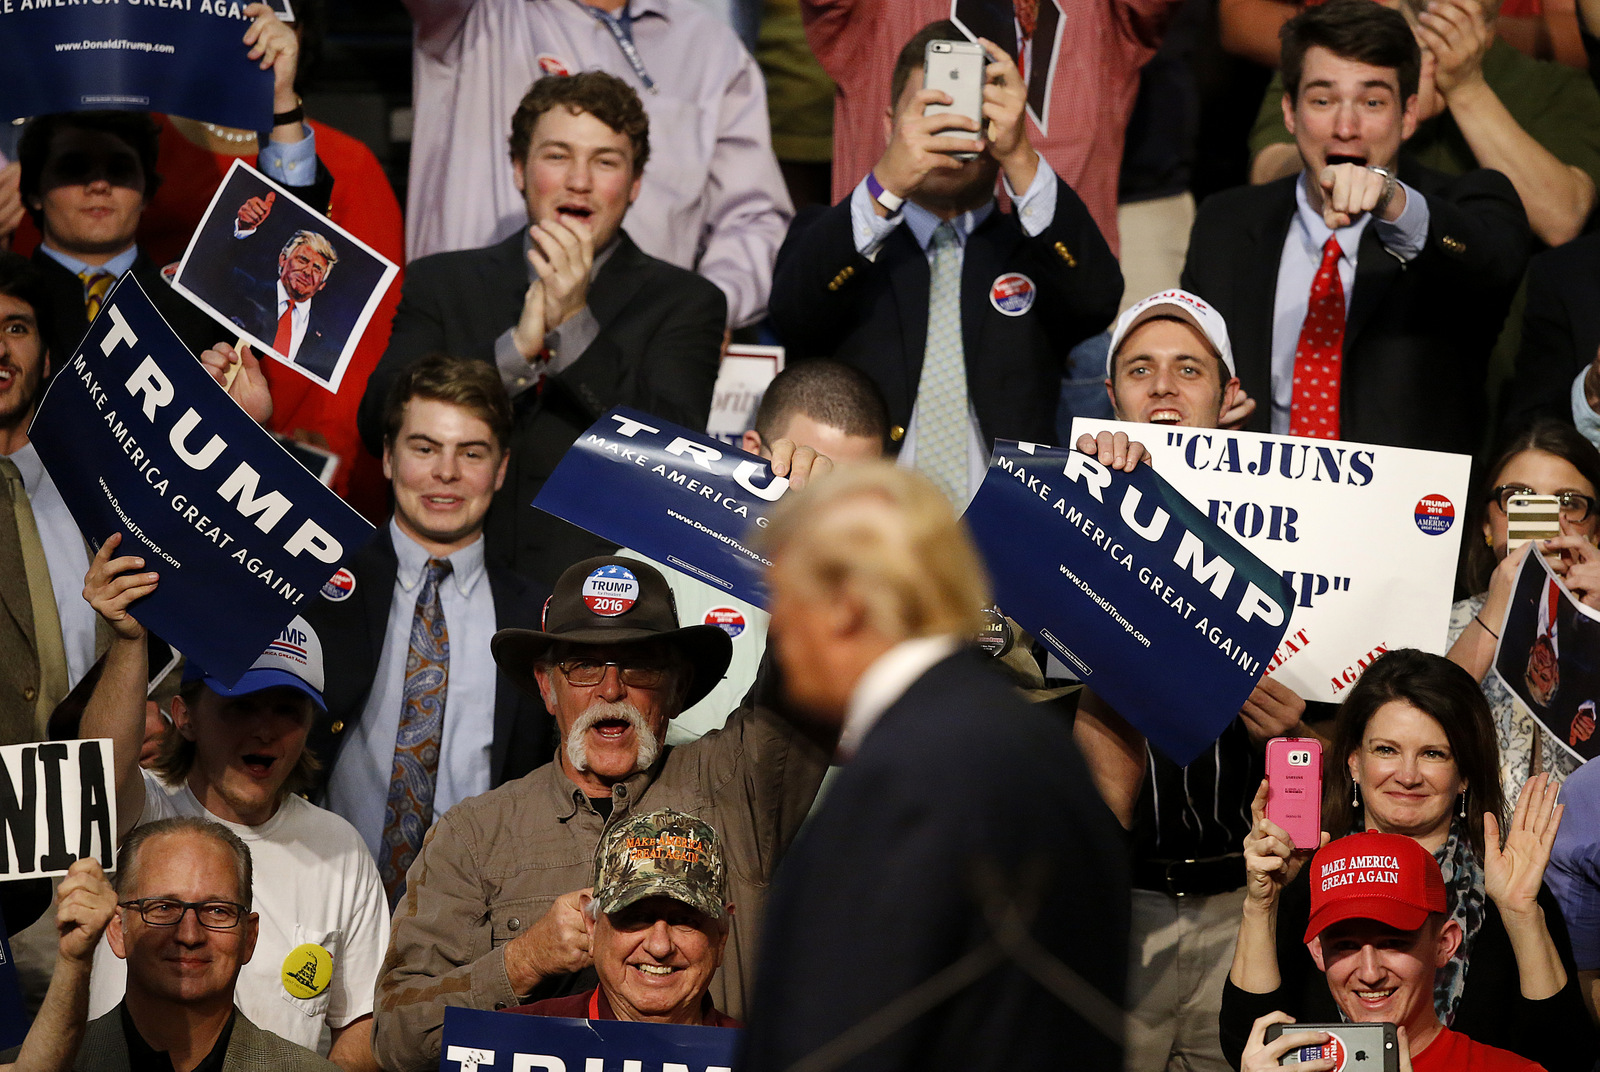 Would America's First Populists Even Recognize Trump's Brand Of Populism?